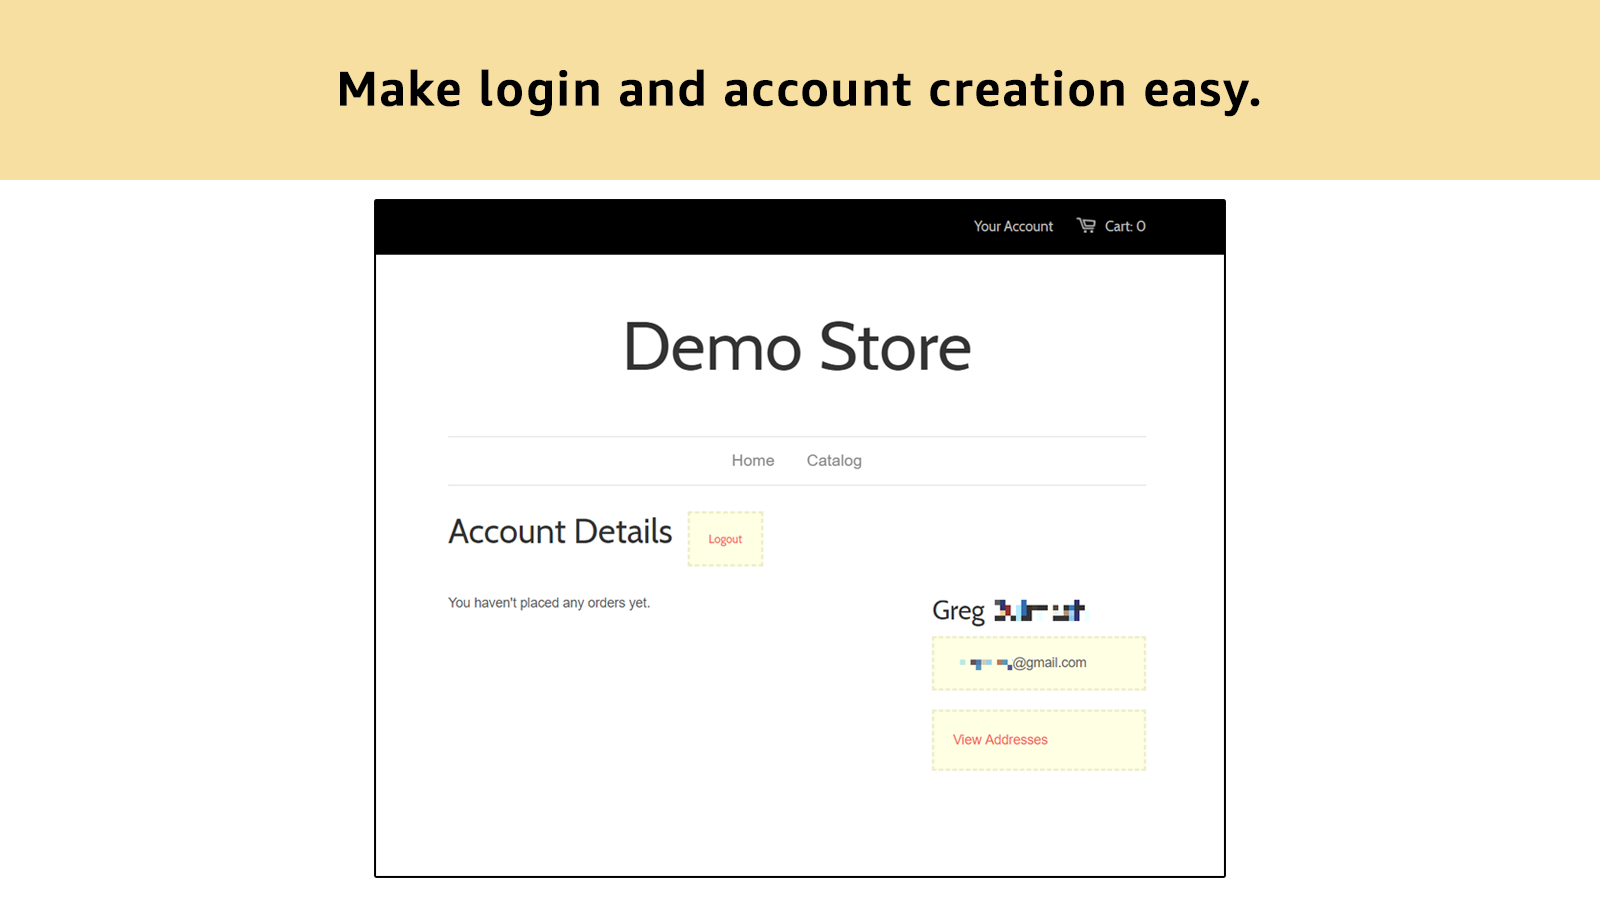 Ease, familiarity, and trust... use Login with Amazon.